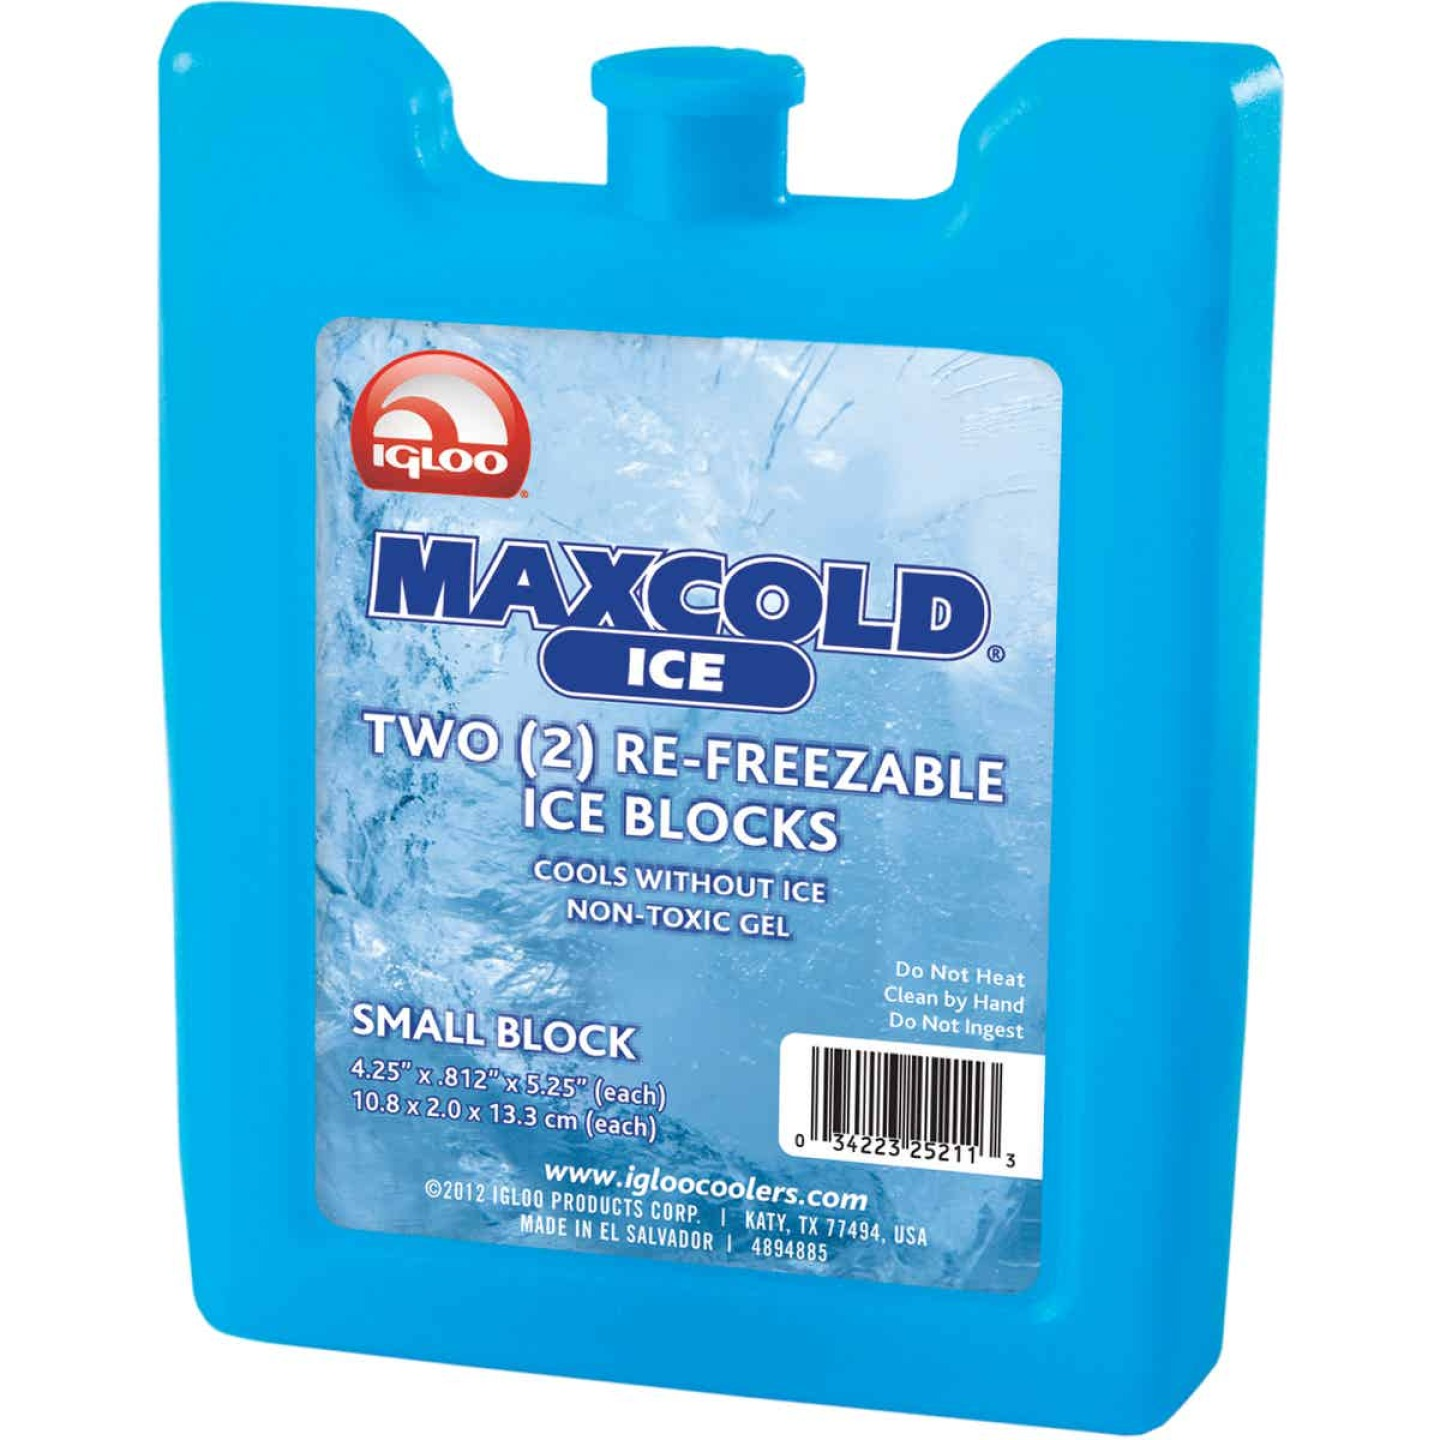 Igloo Maxcold 0.5 Lb. Small Cooler Ice Pack Image 1